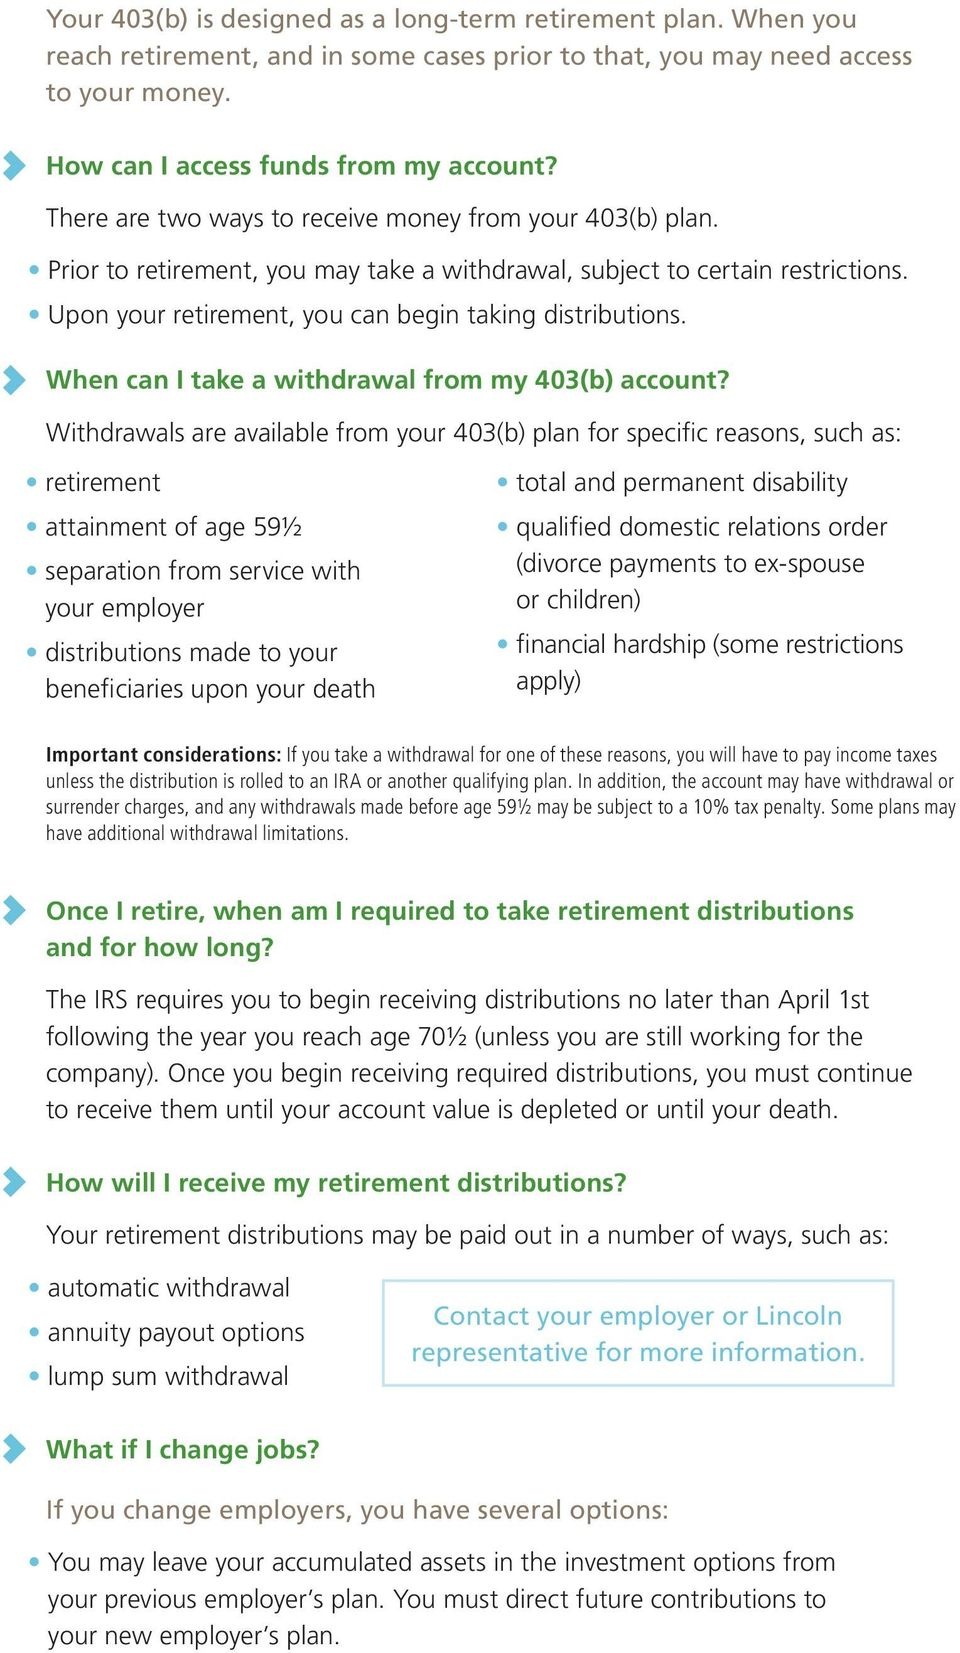 When can I take a withdrawal from my 403(b) account?